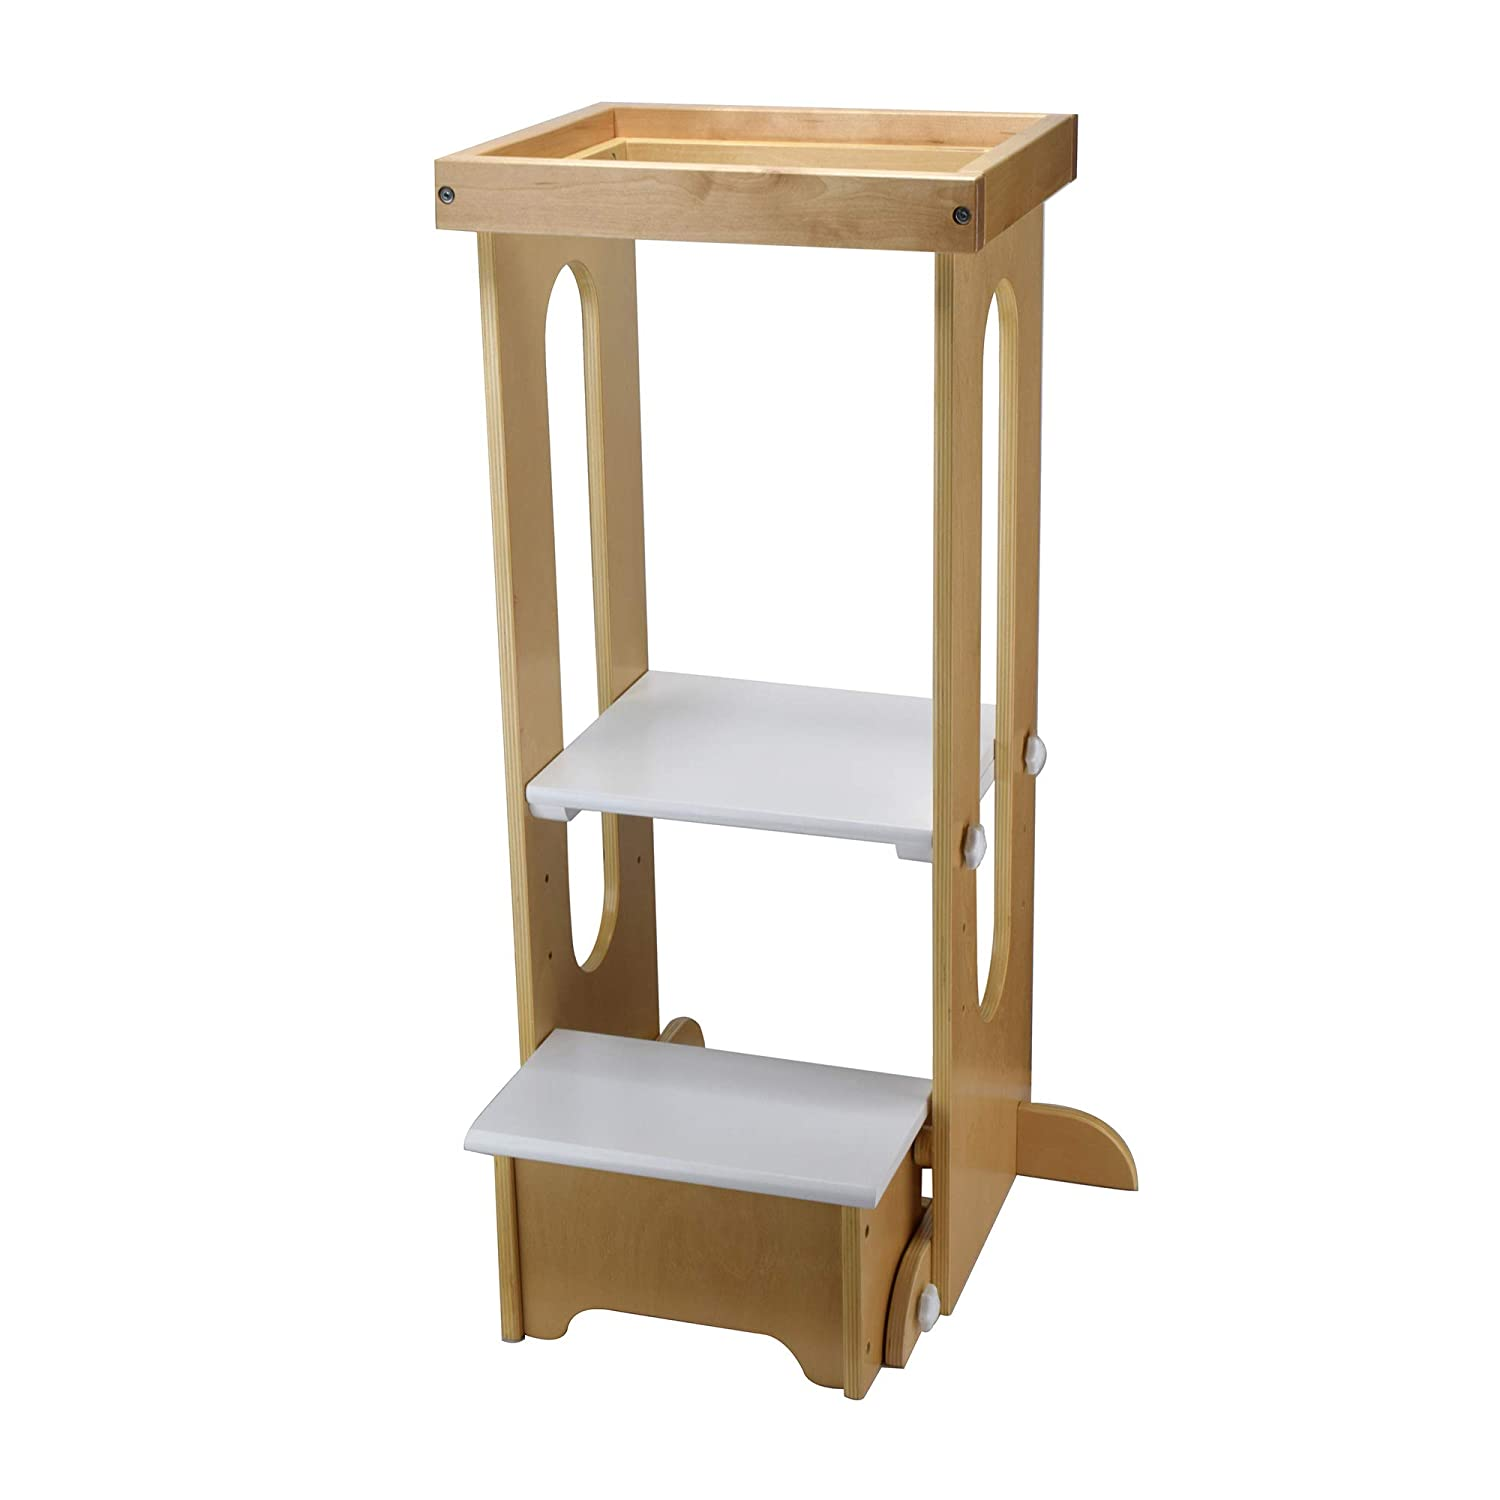 Little Partners Explore n Store Learning Tower Kids Adjustable Height Kitchen Step Stool Toddlers Any Little Helper - Natural